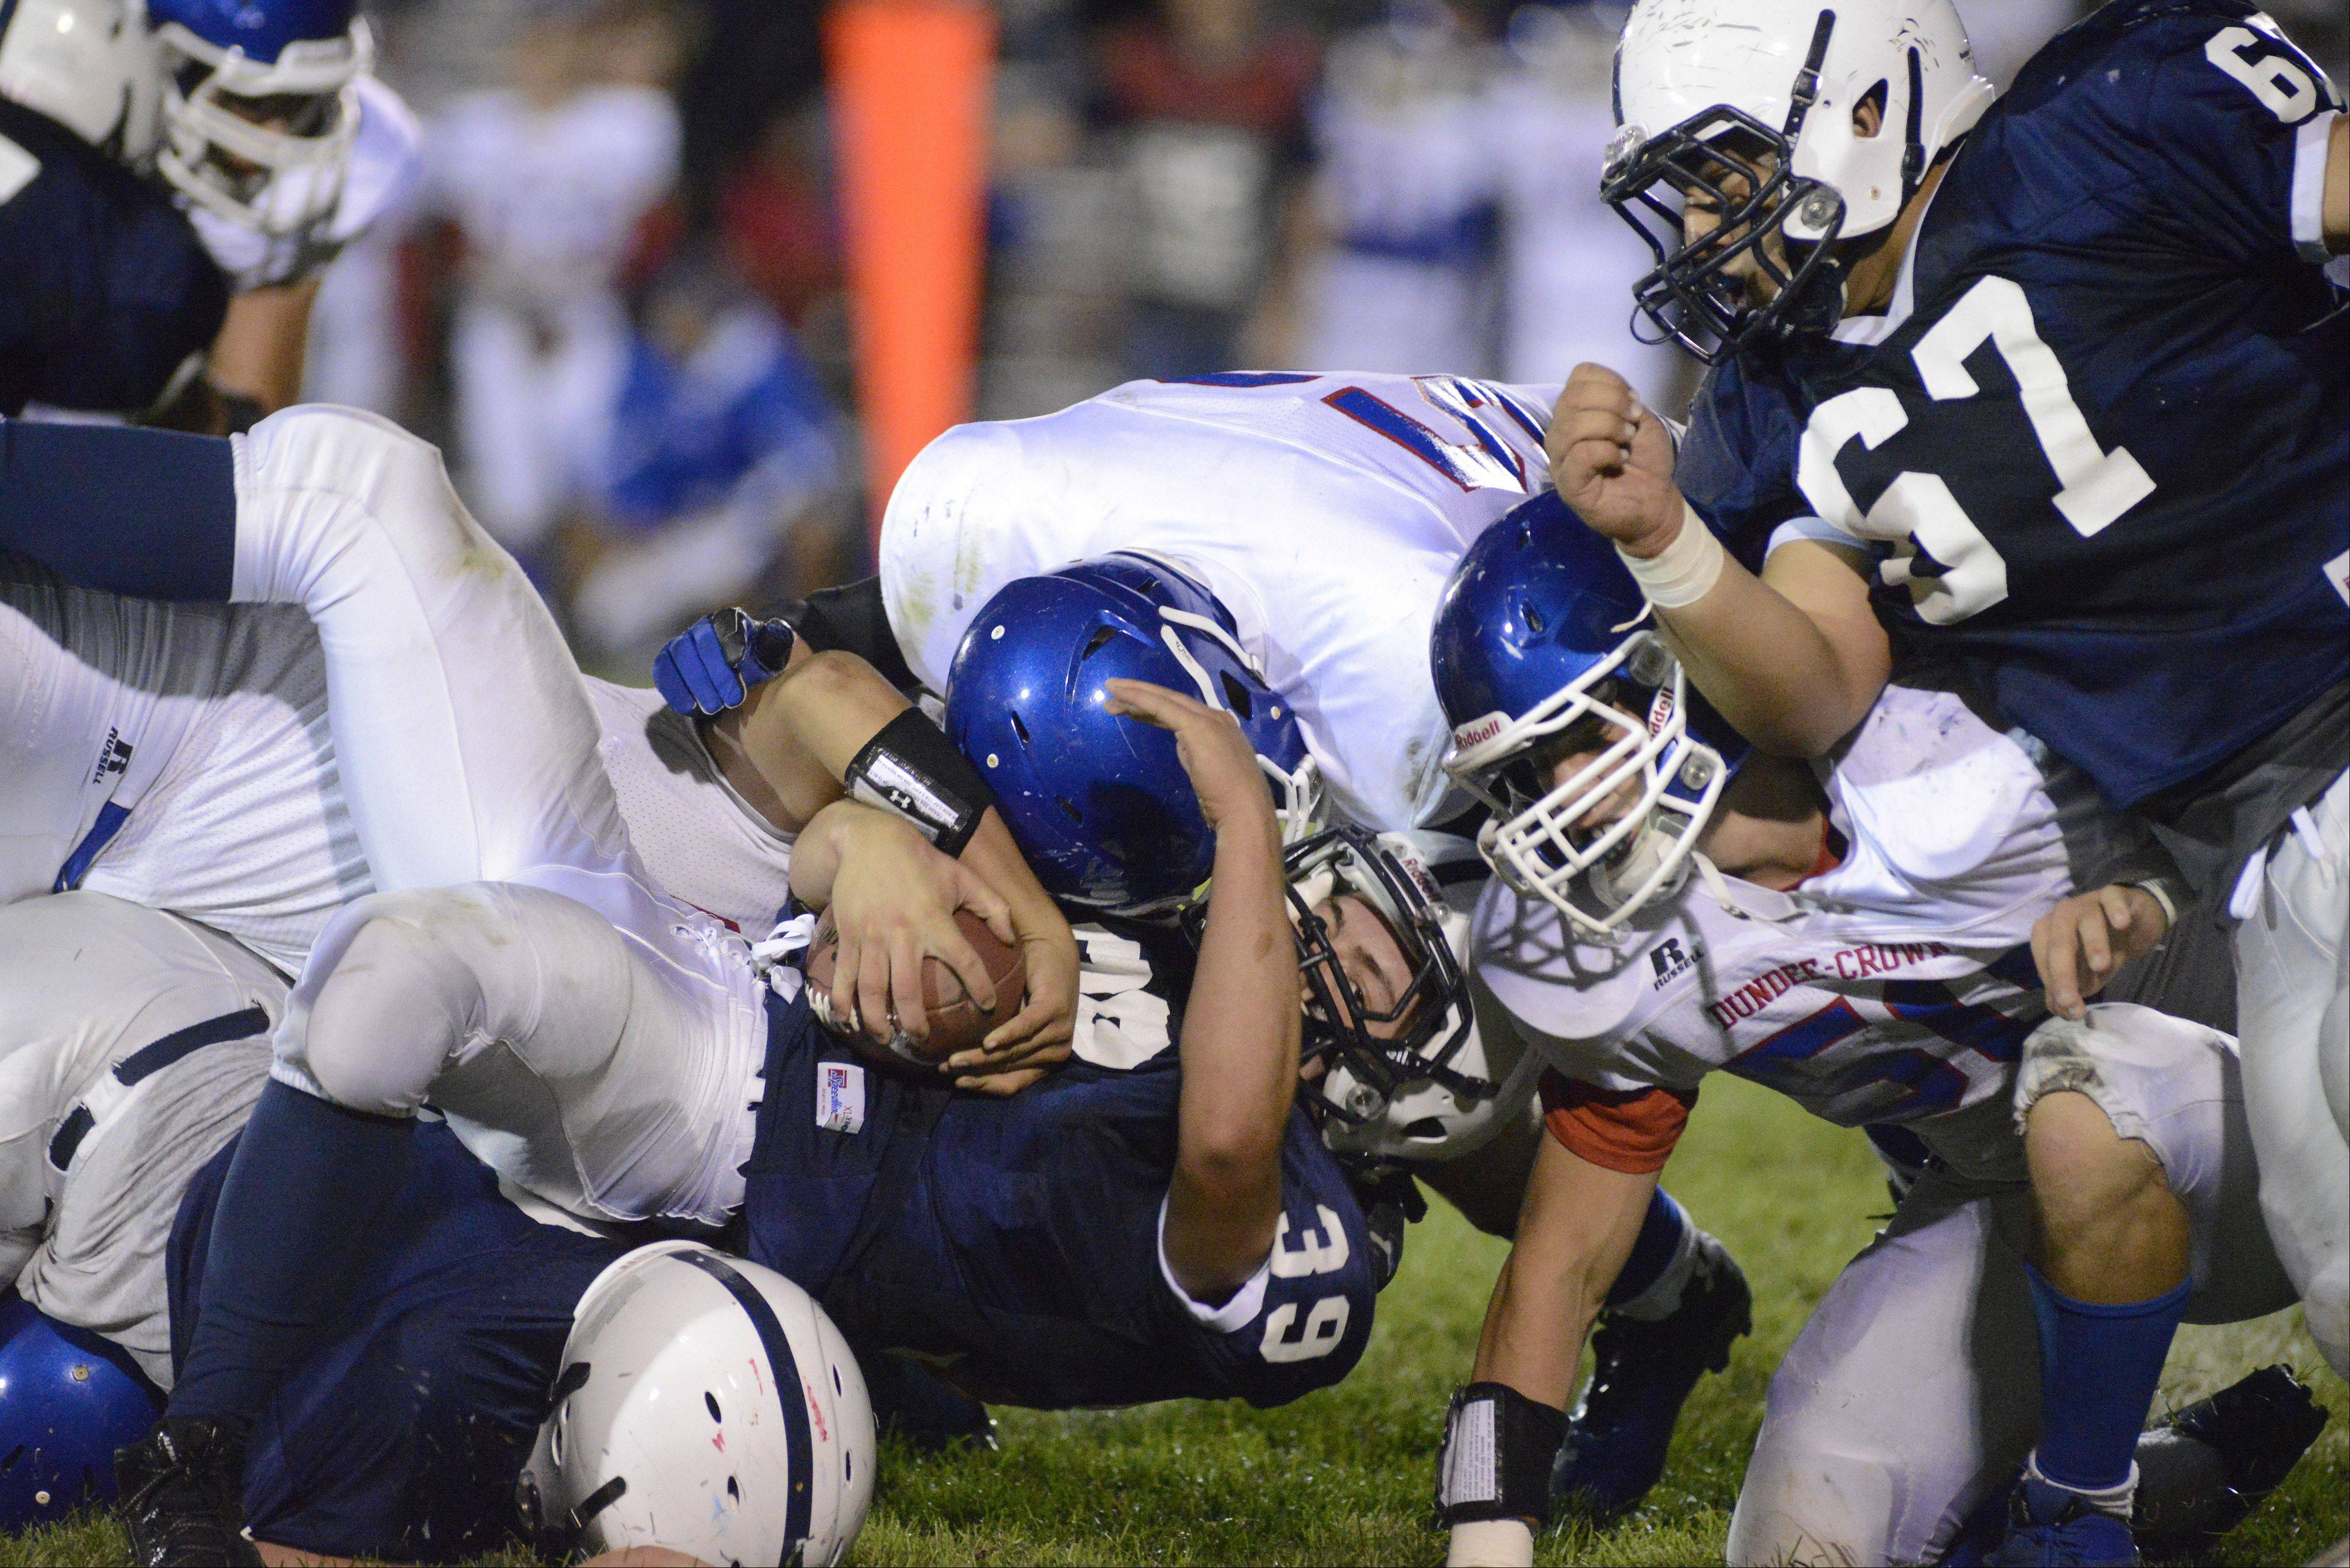 Cary-Grove's Tyler Pennington is taken down by Dundee-Crown's Xzavier Torres and Zach Thelen in the second quarter.